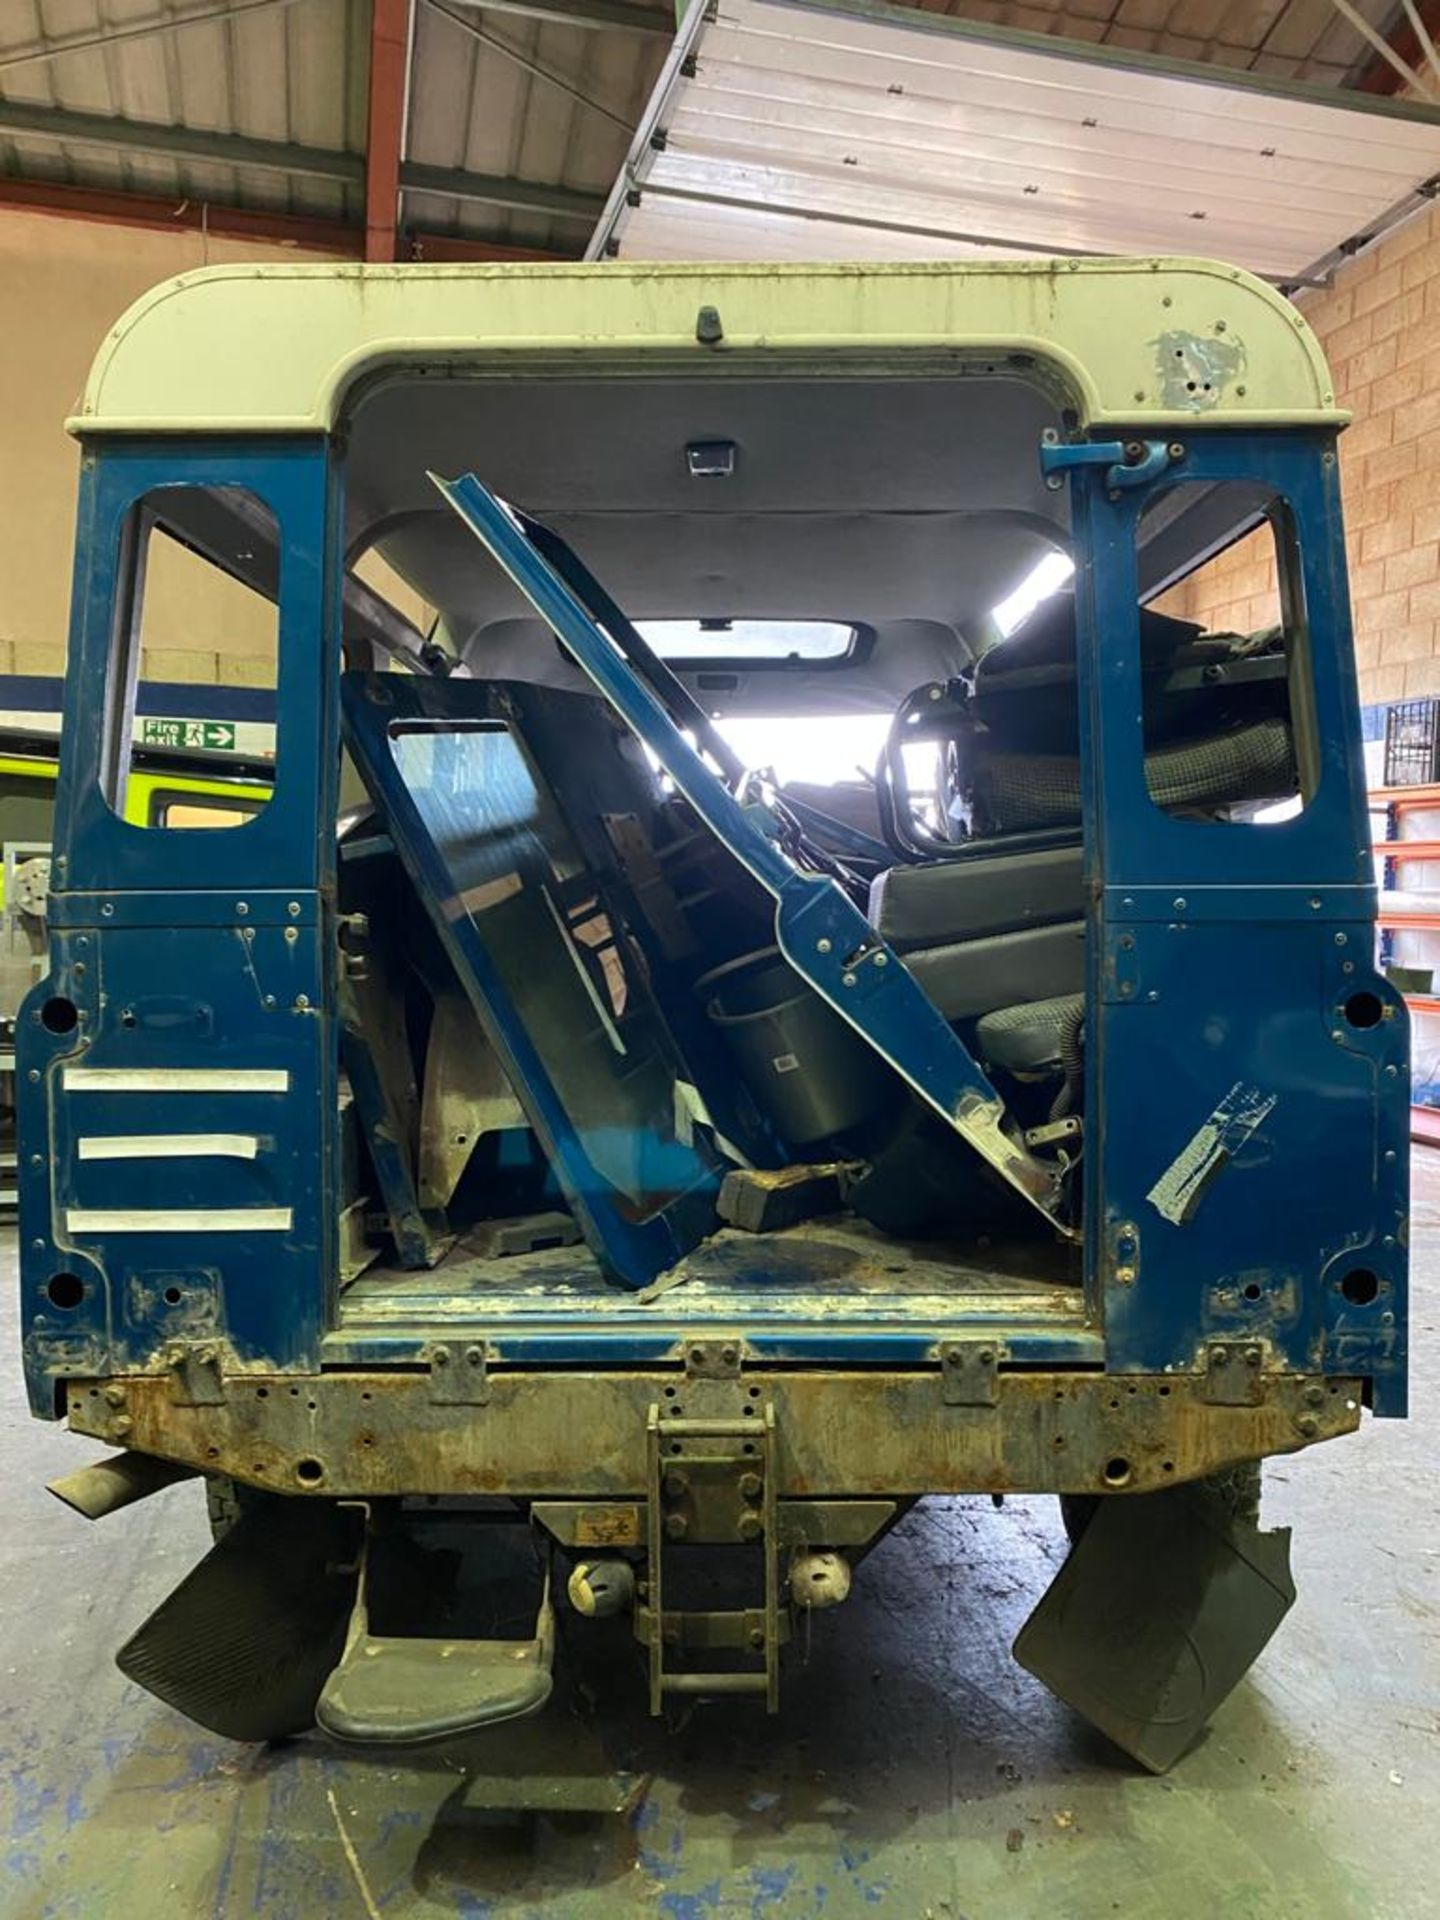 Land Rover 110 County, 300 TDI Engine Appears Mostly Complete - No Bumper, Bonnet, Glass etc As - Image 4 of 26